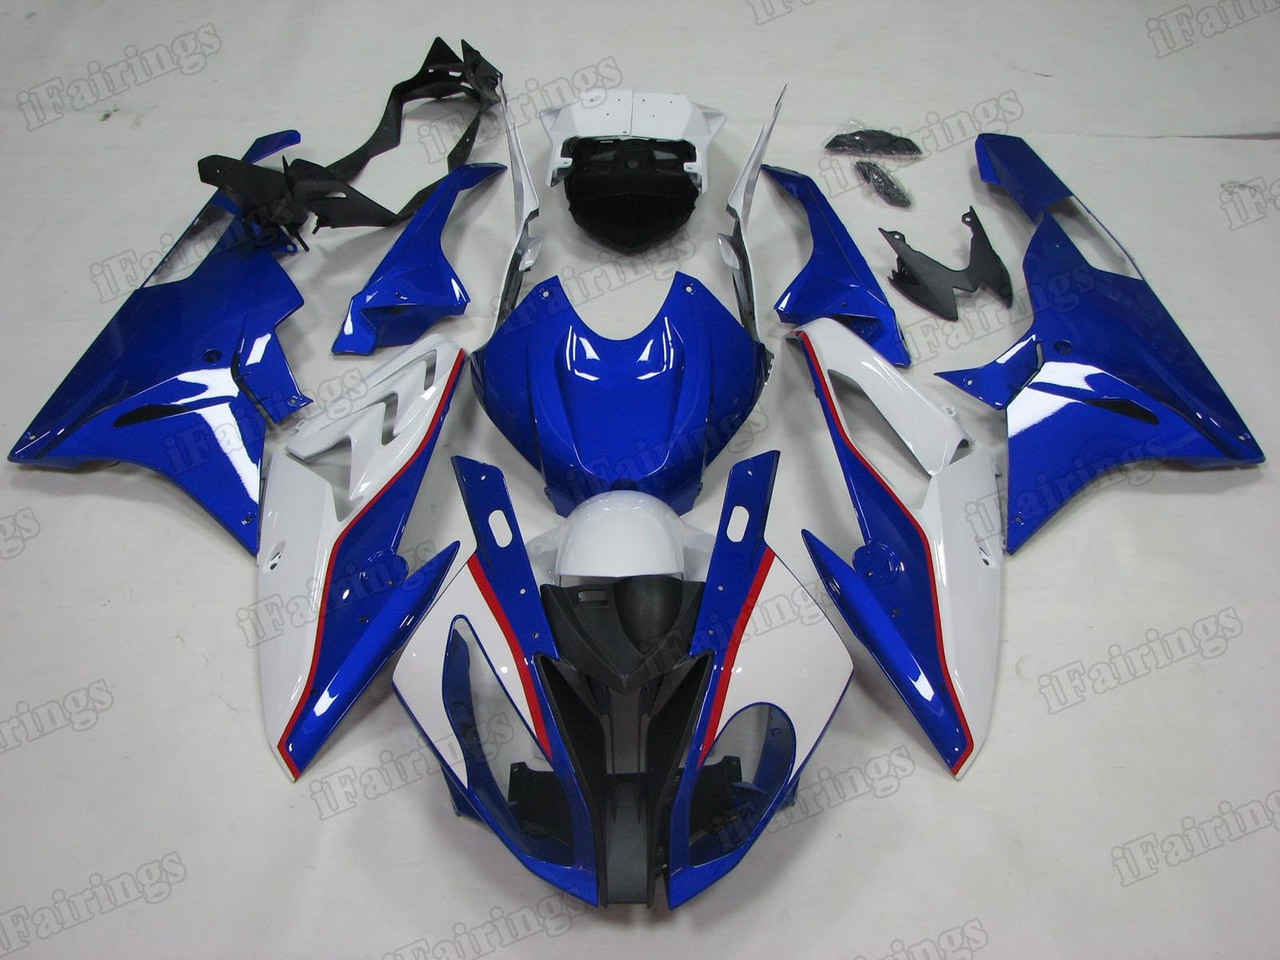 2015 2016 BMW S1000RR blue and white fairings.